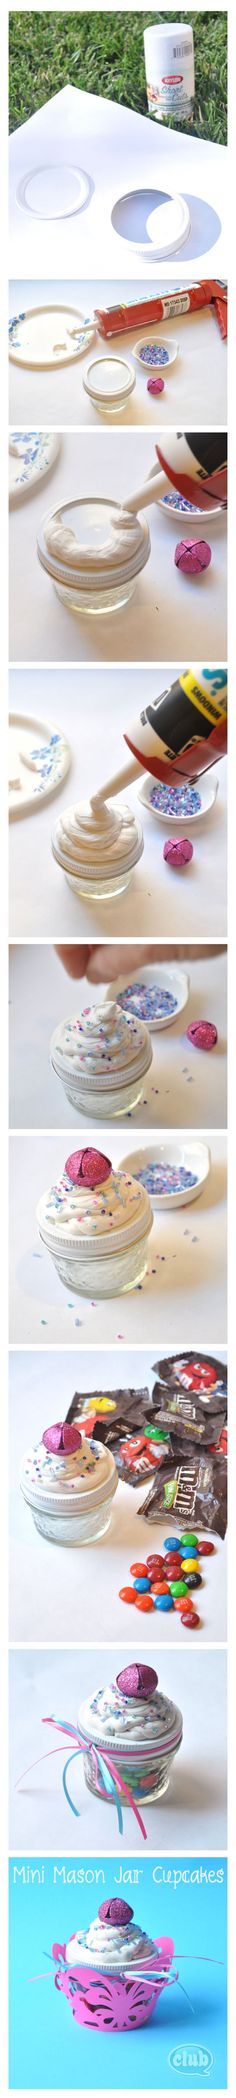 DIY Mason jar cupcakes! Just adorable for taking little snacks, candies.